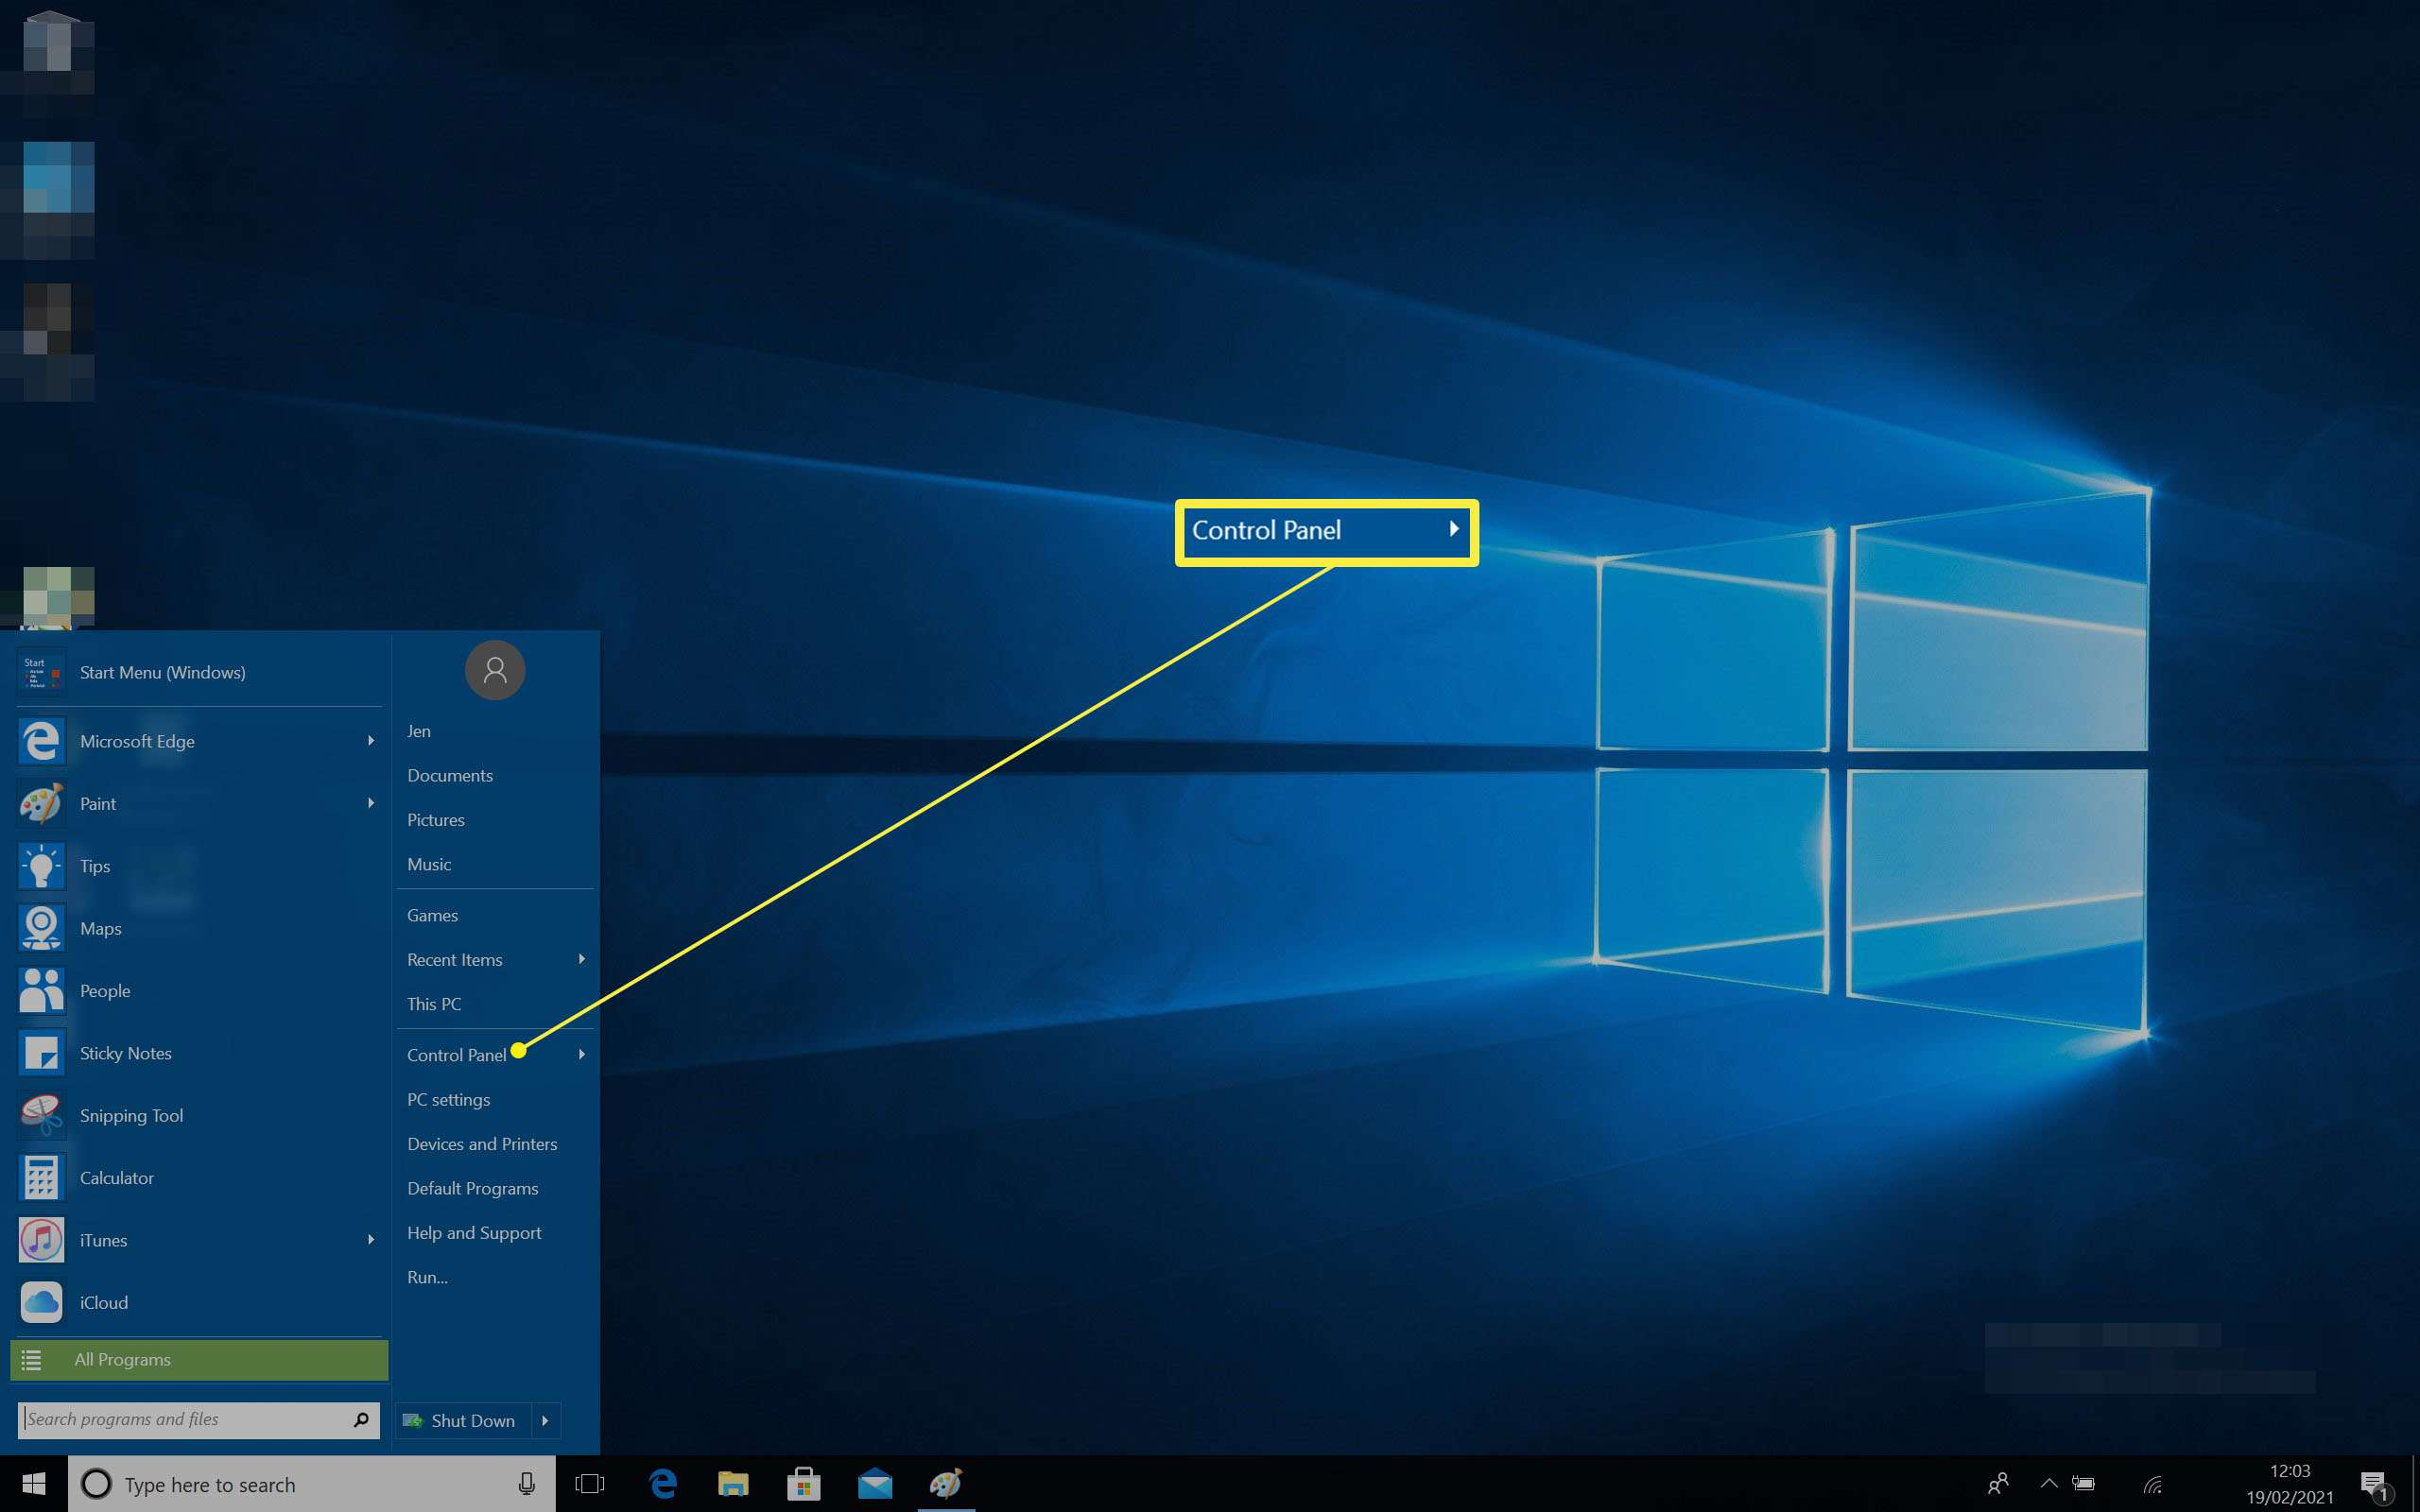 Windows 10 desktop with Start Menu open and Control Panel highlighted